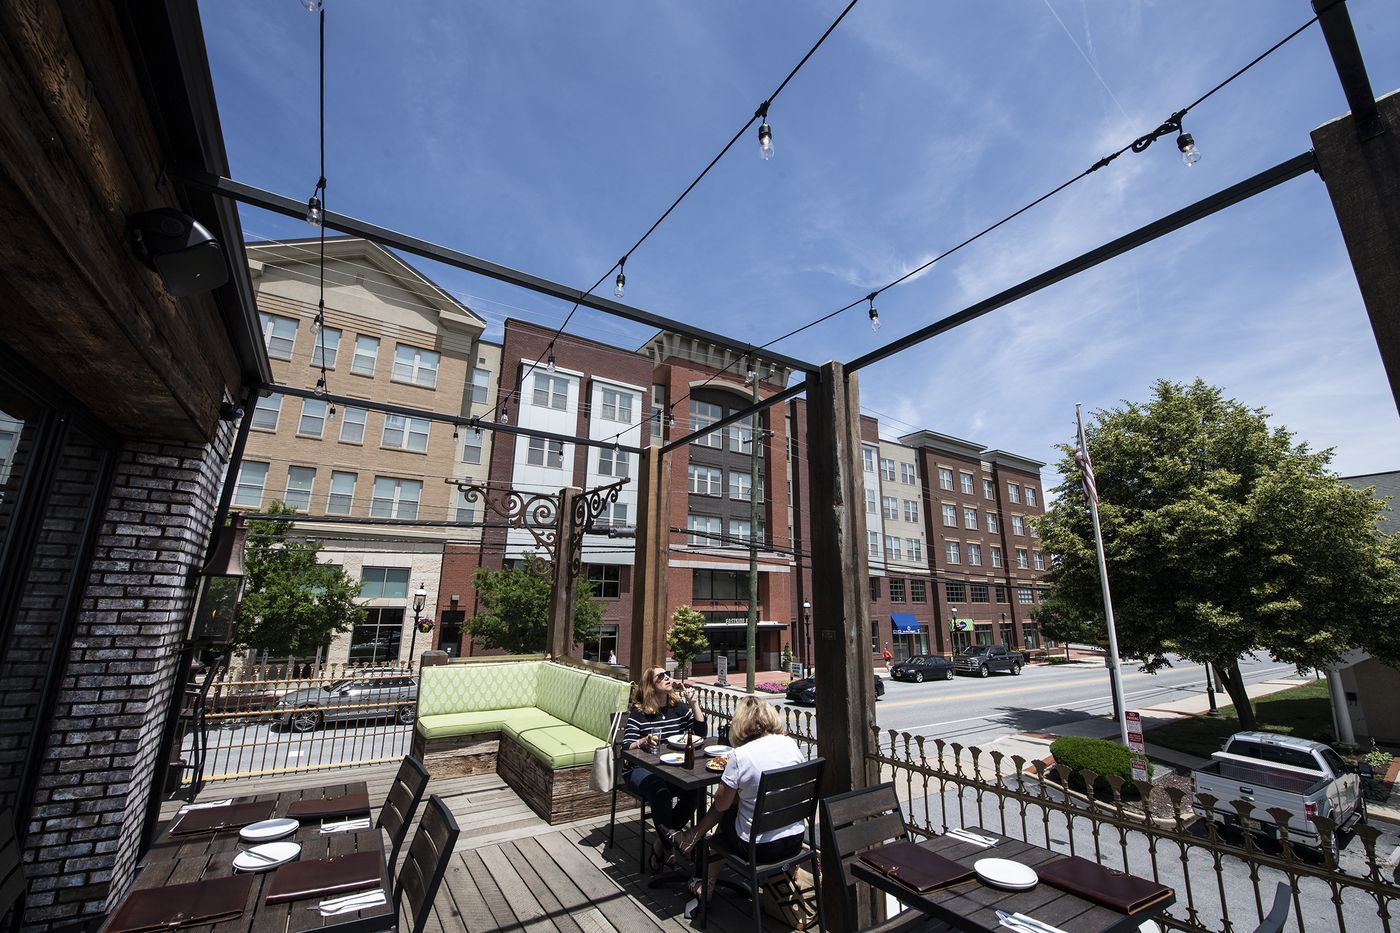 Customers dine on the outdoor deck of the Brick & Brew in Malvern.